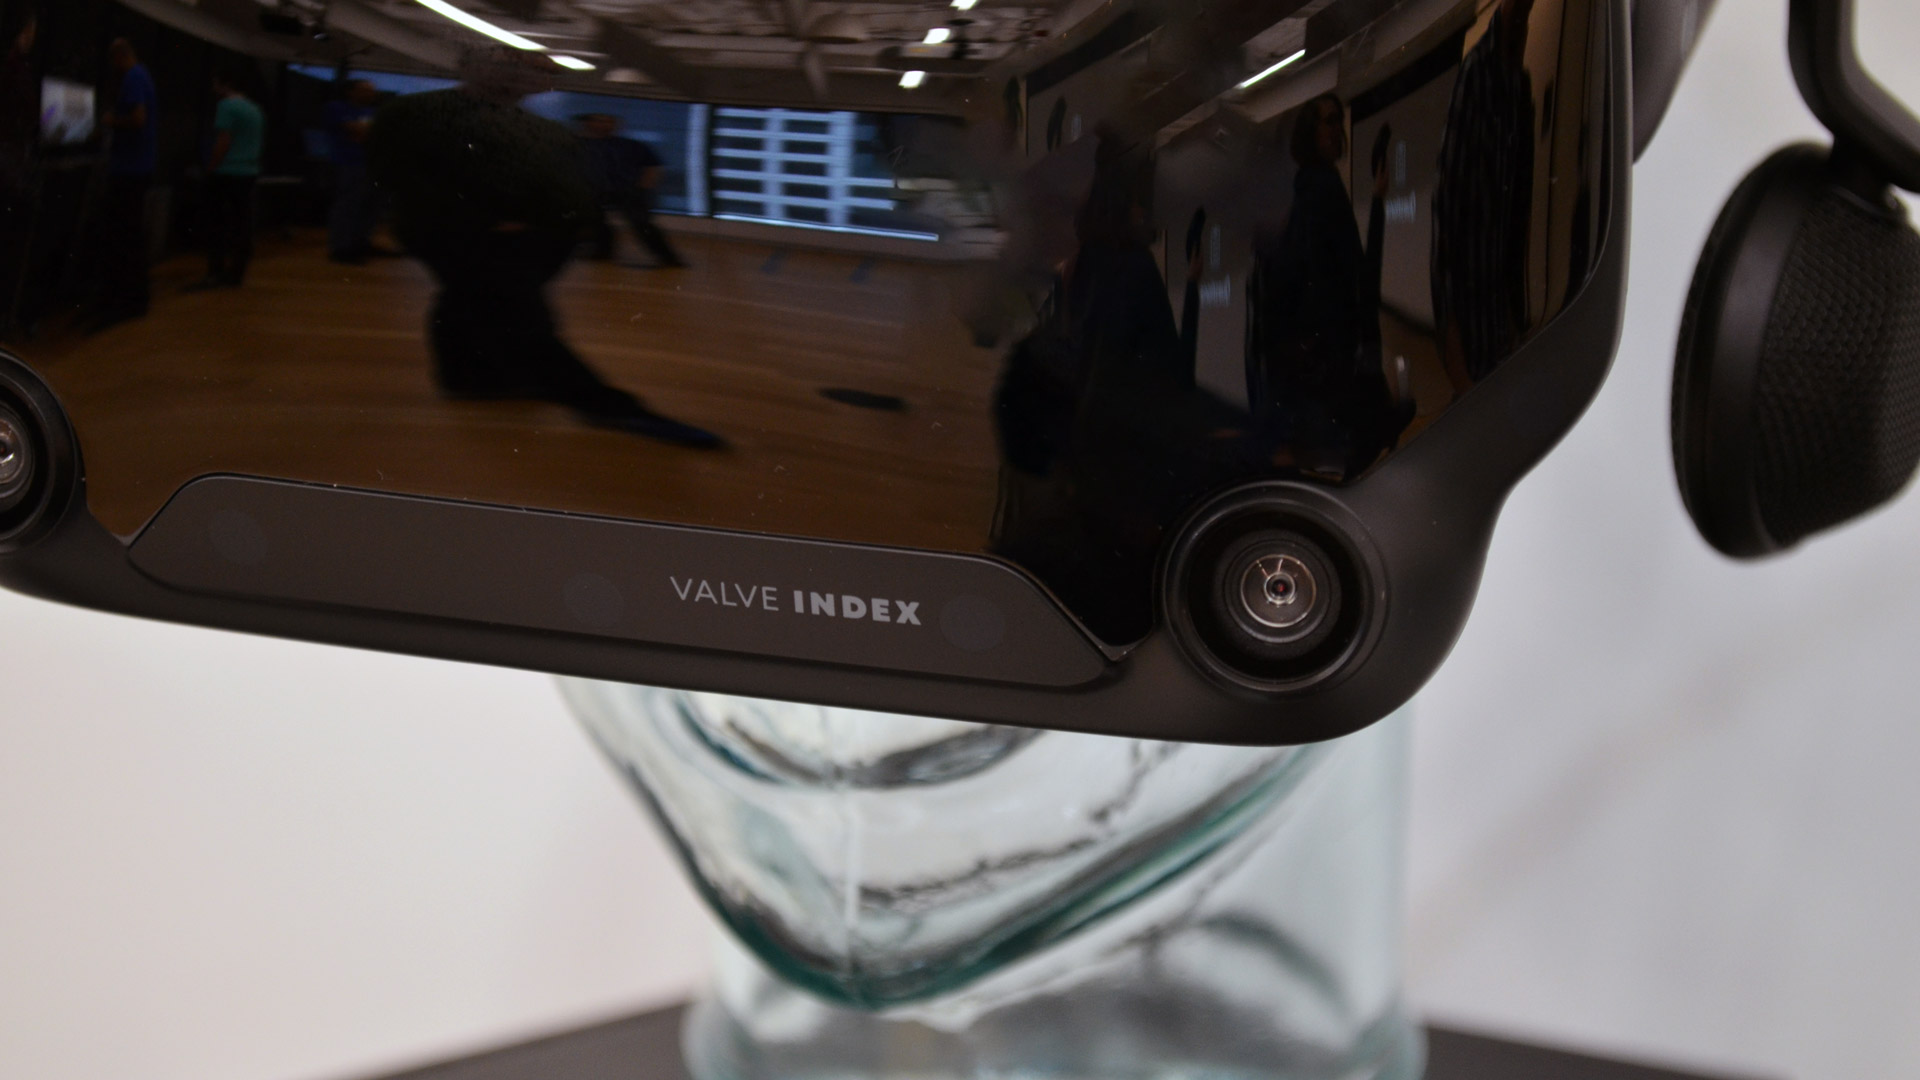 Valve Index Review – The Enthusiast's Choice in VR Headsets